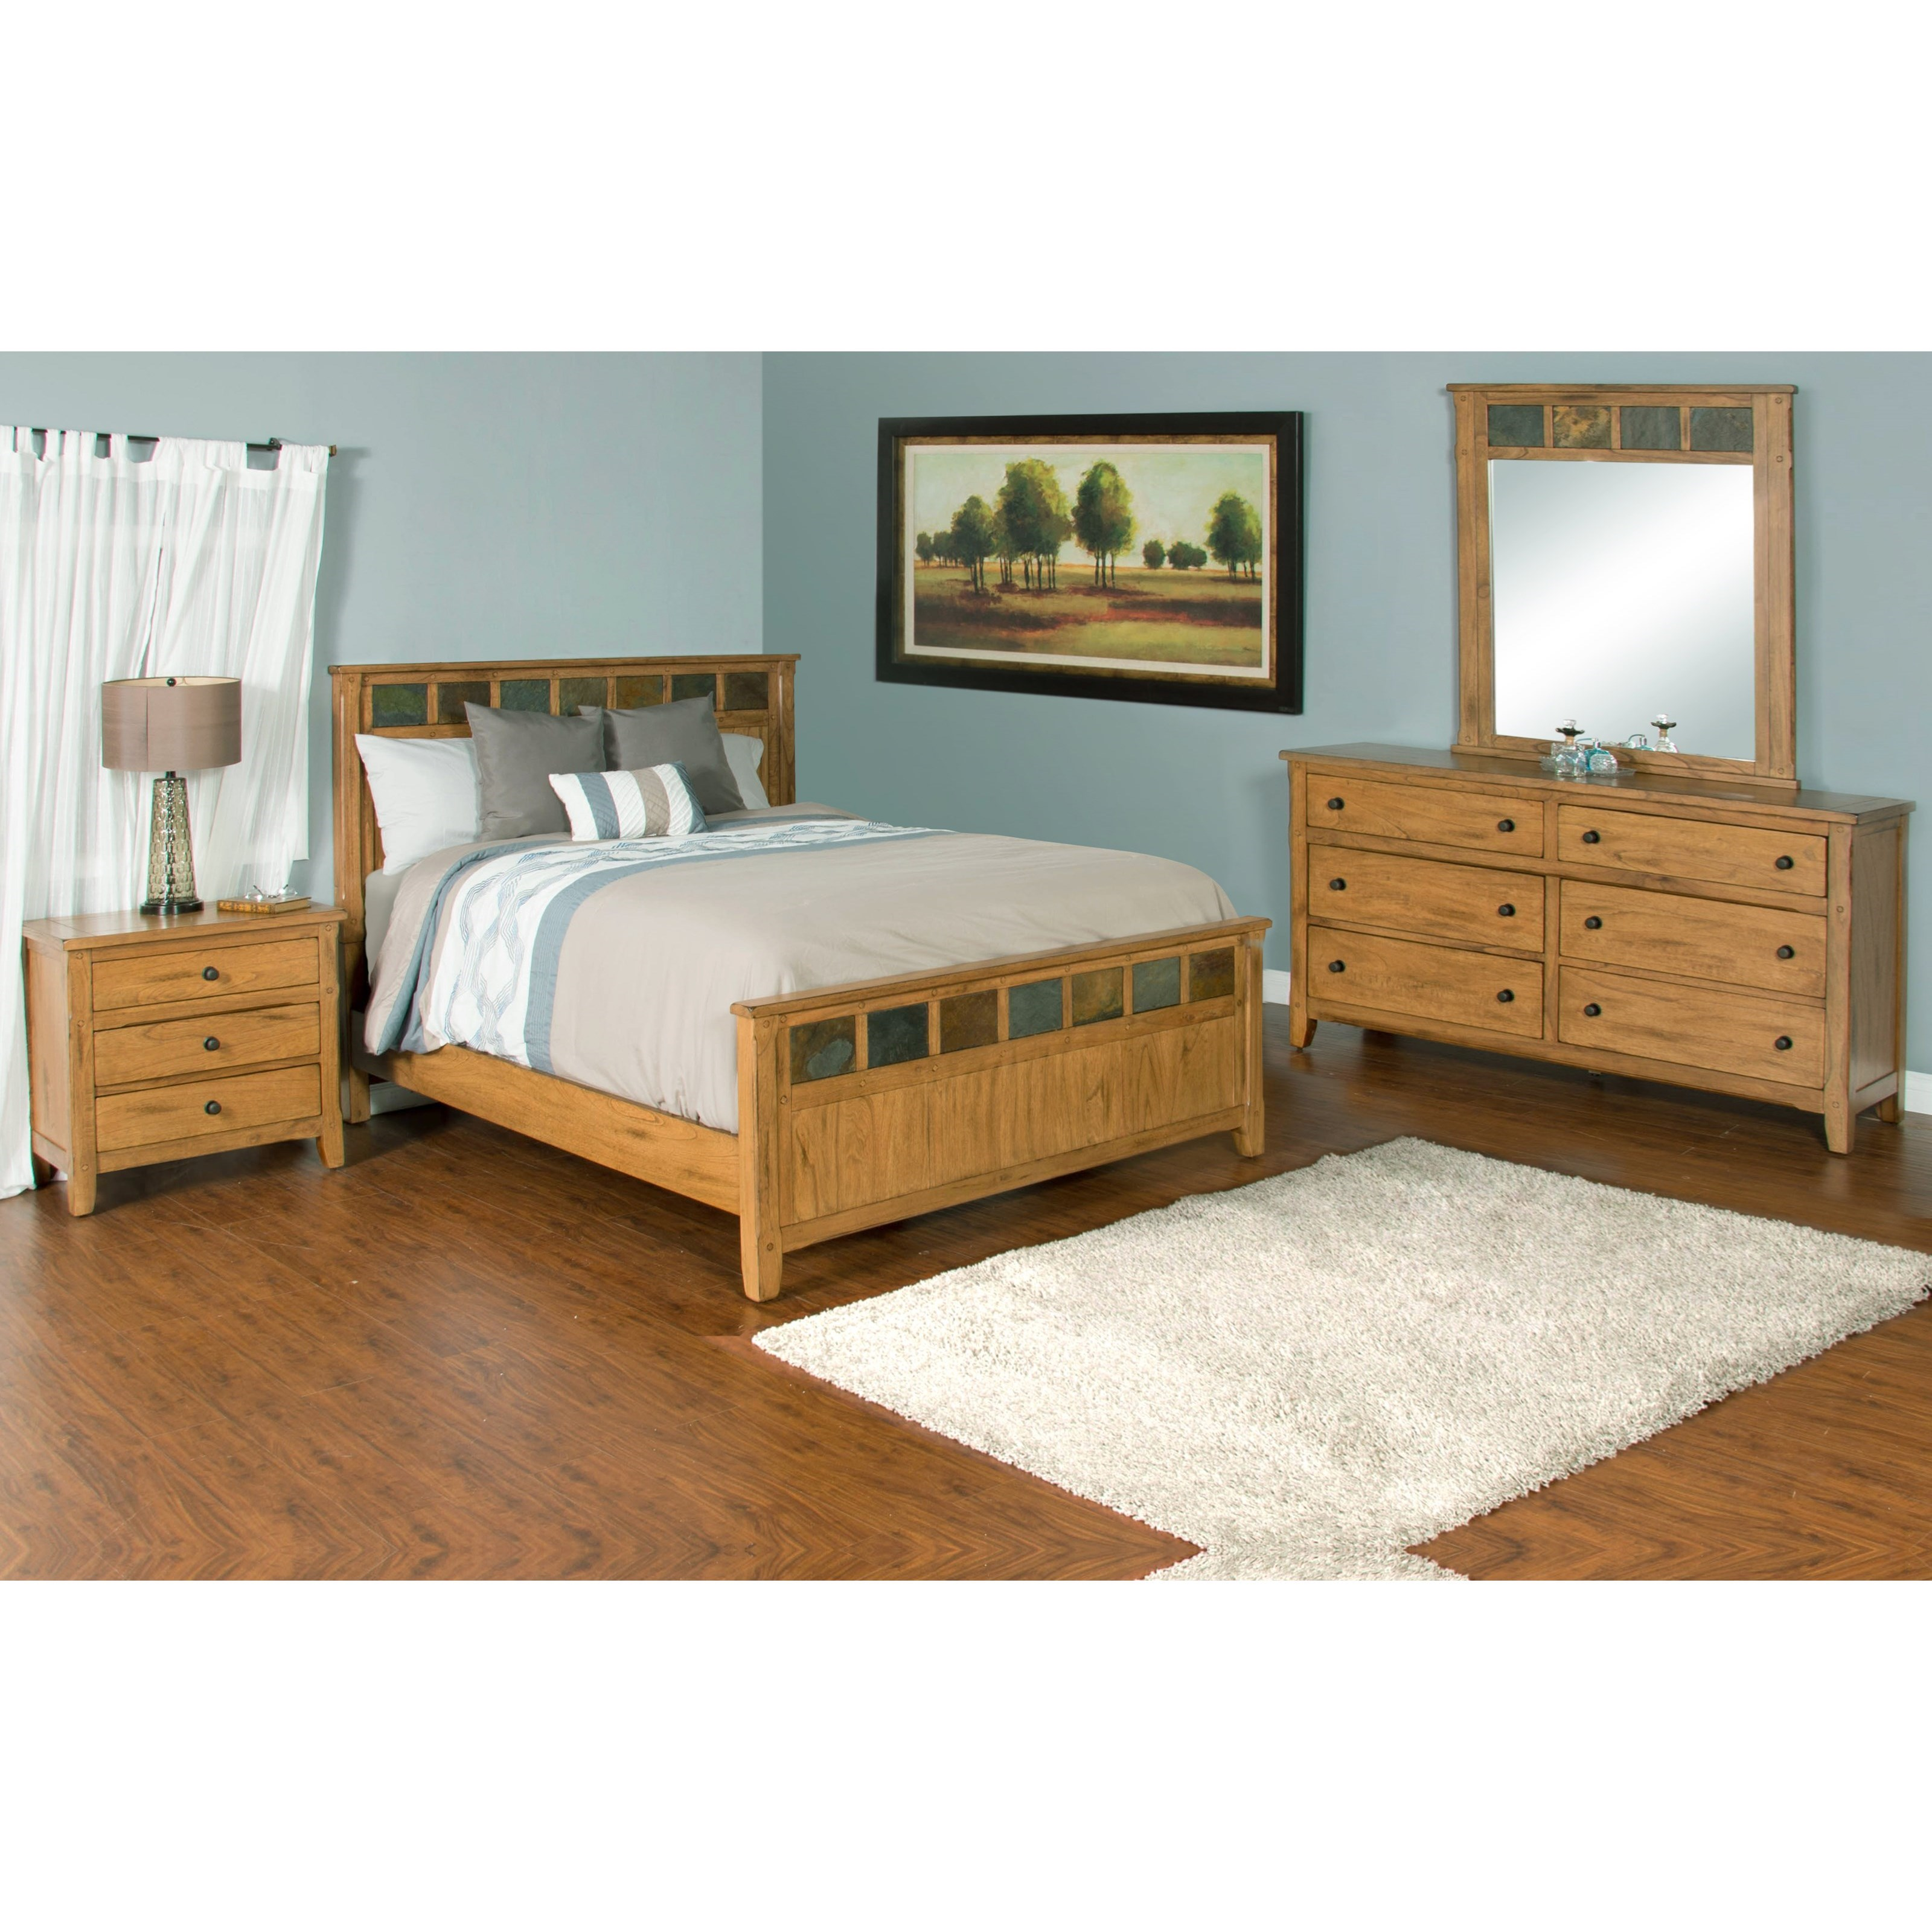 Sunny Designs Sedona King Bedroom Group - Item Number: RO K Bedroom Group 3